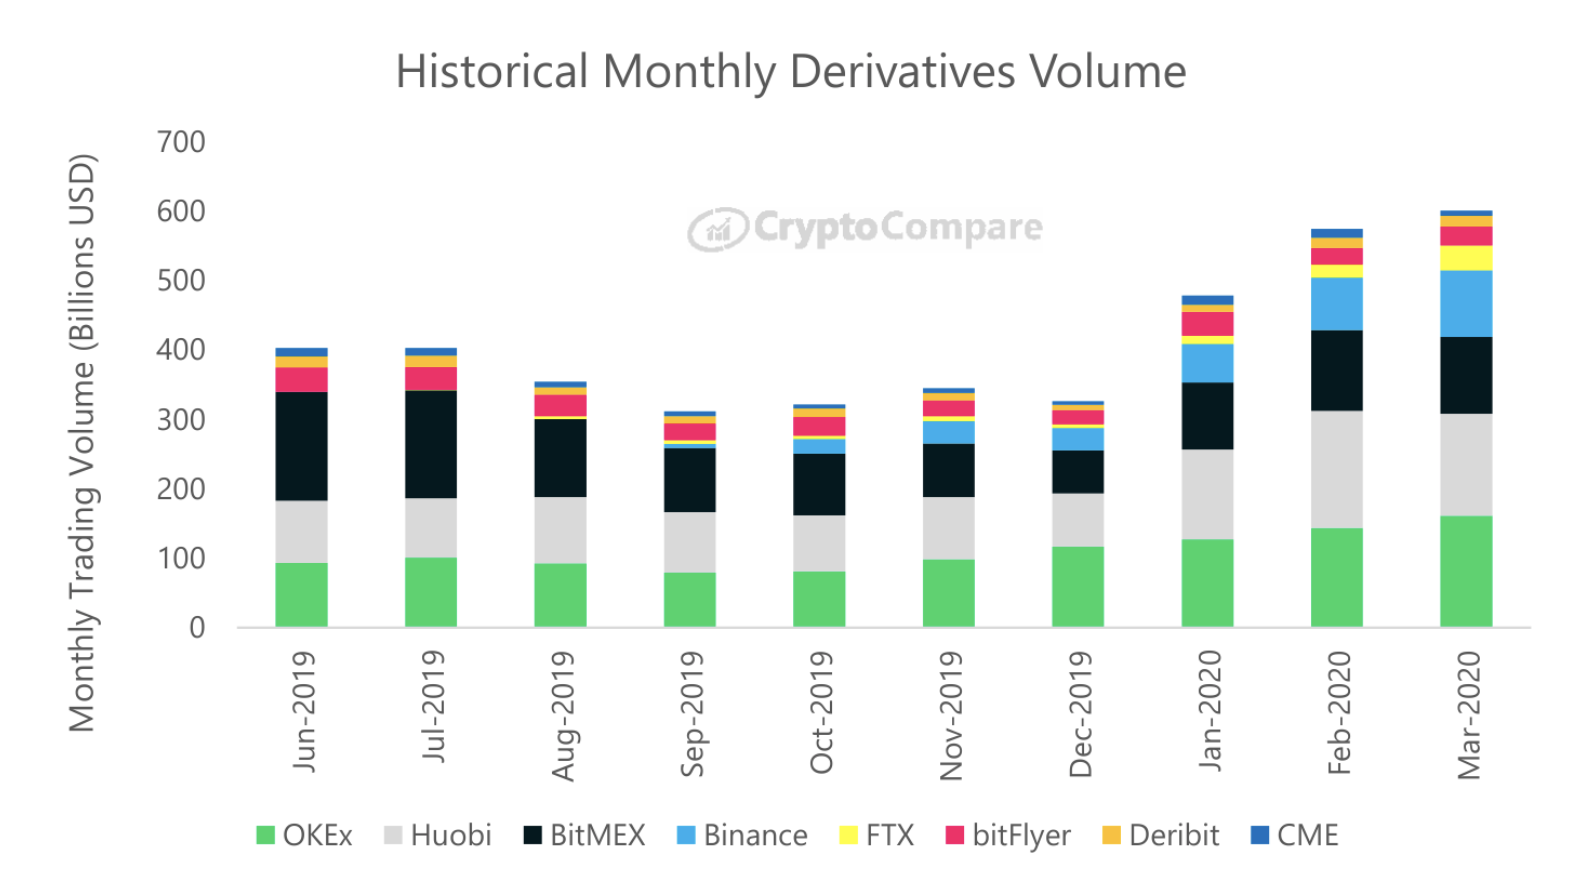 Historical Monthly Derivatives Volume by CryptoCompare